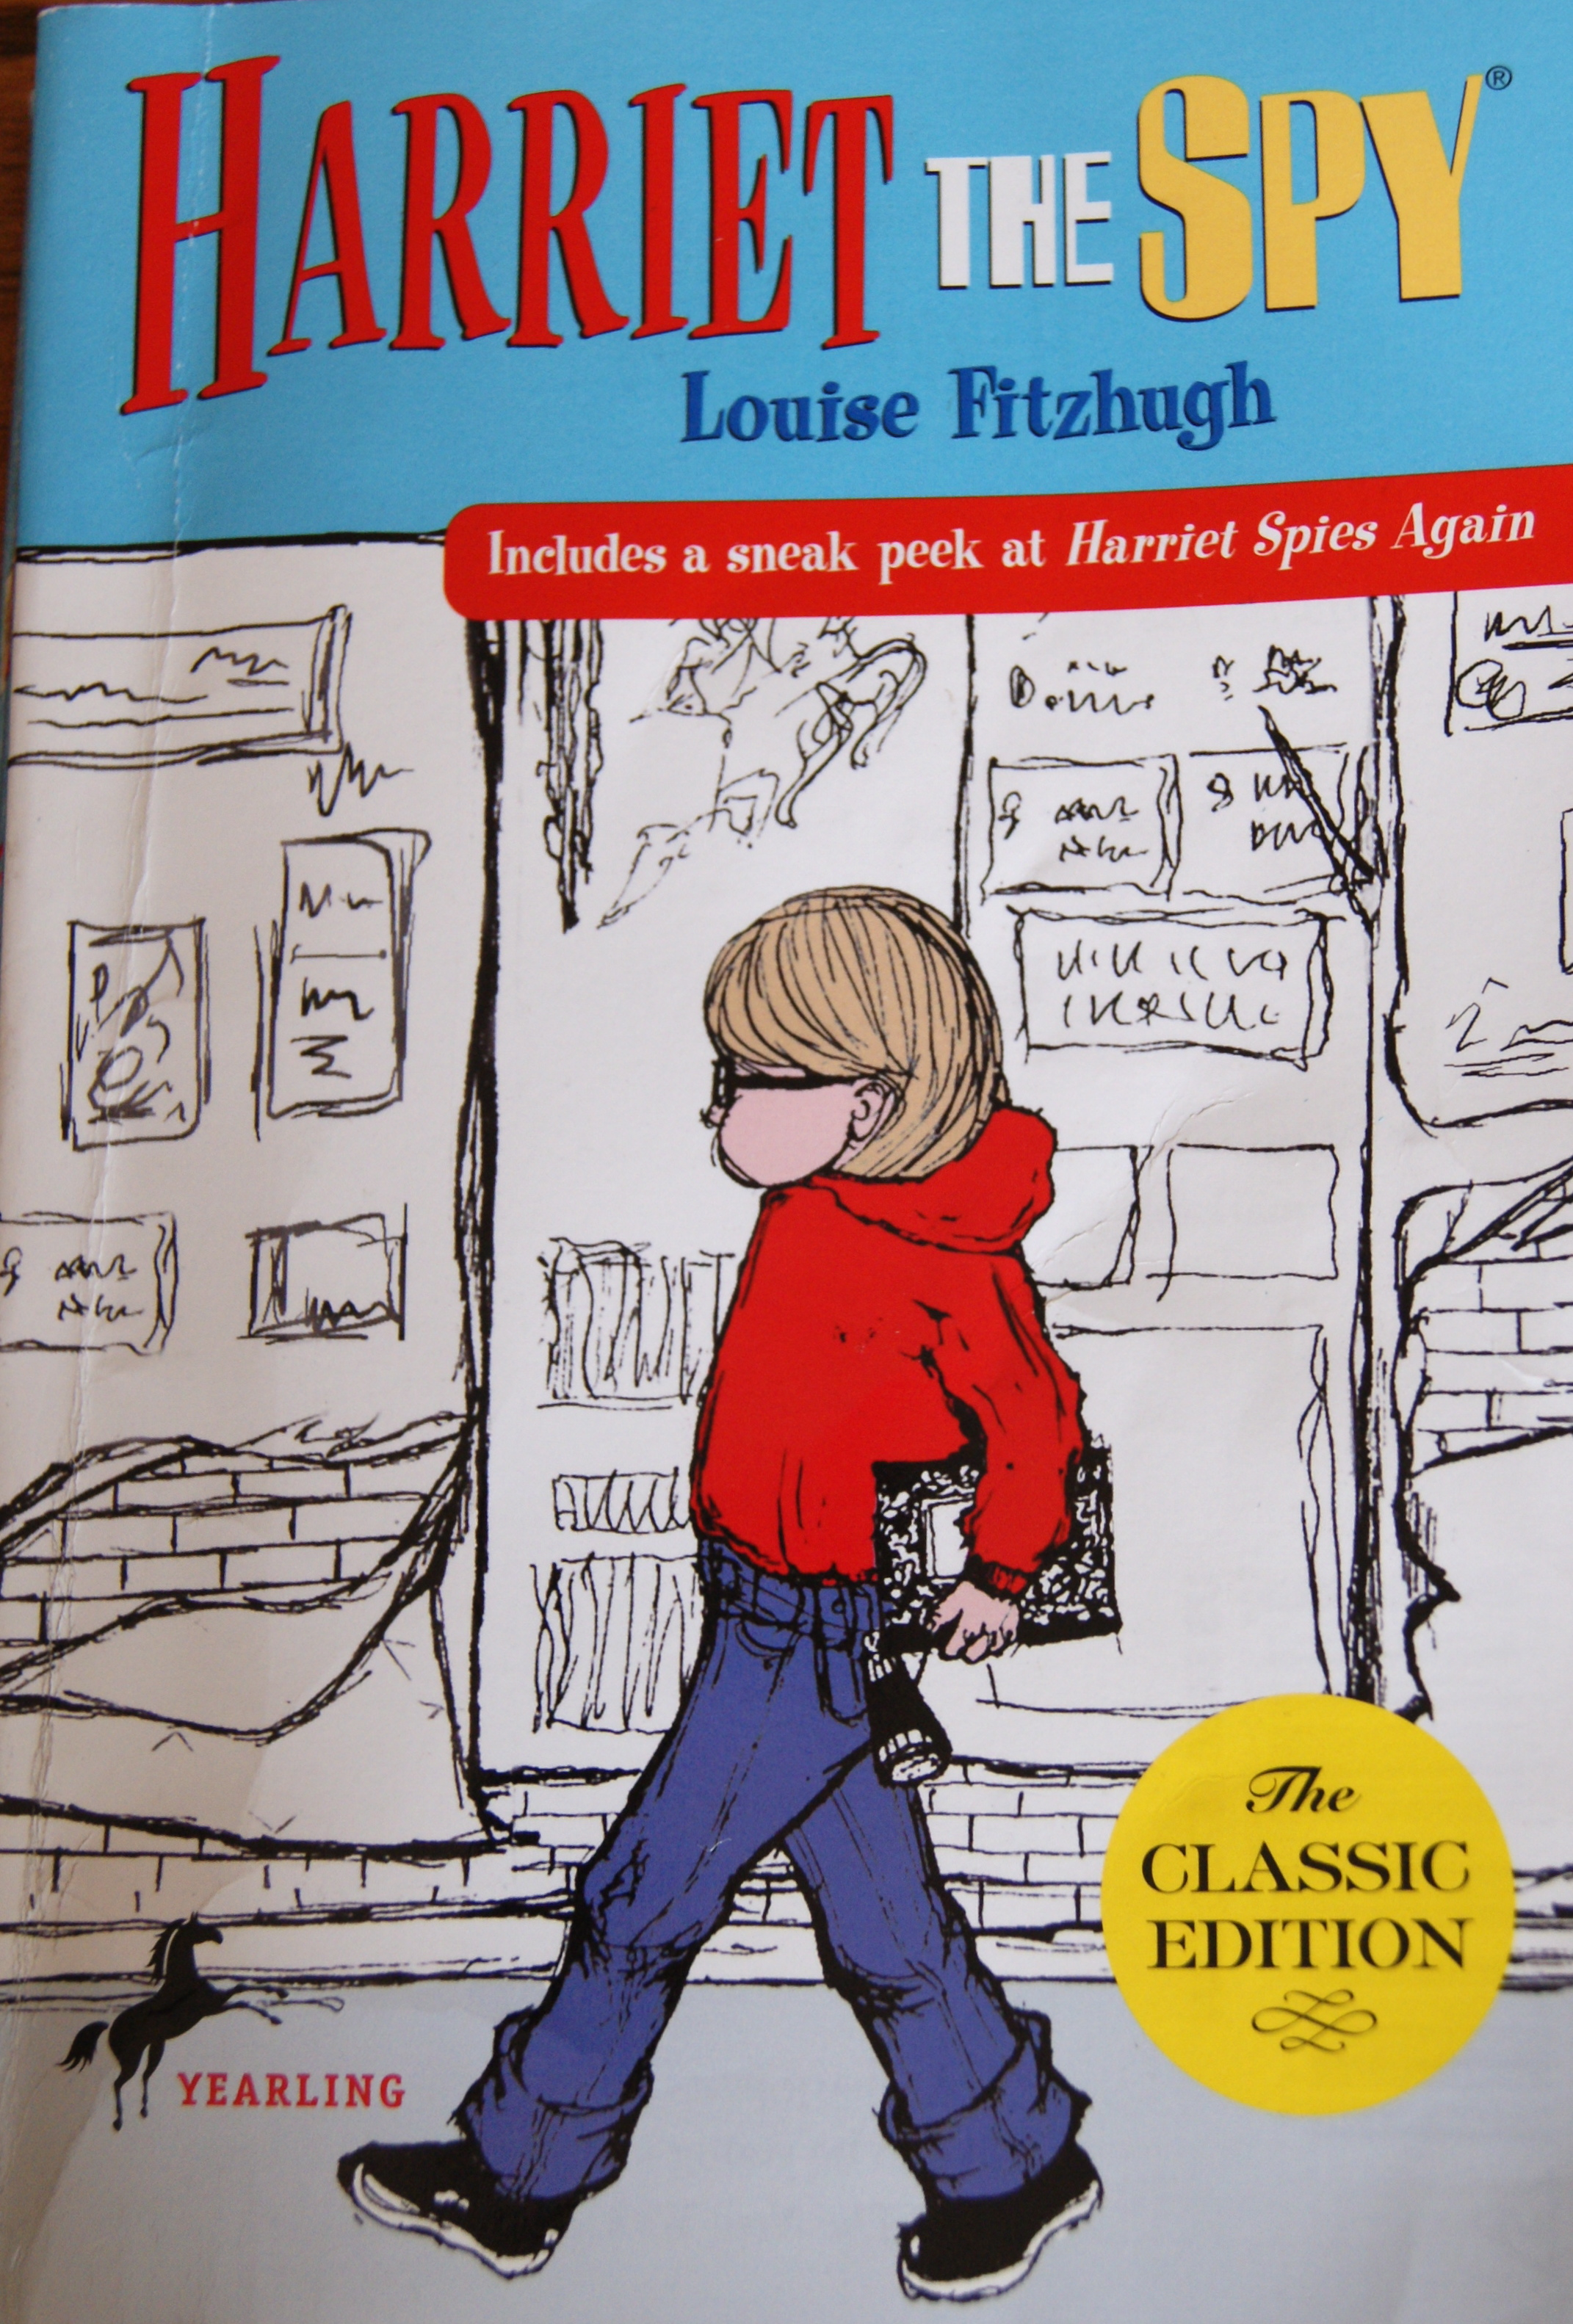 harriet the spy essay Harriet-the-spy-louise-fitzhugh-1964 harriet the spy is a children's novel written  and illustrated by louise fitzhugh and published by harper.